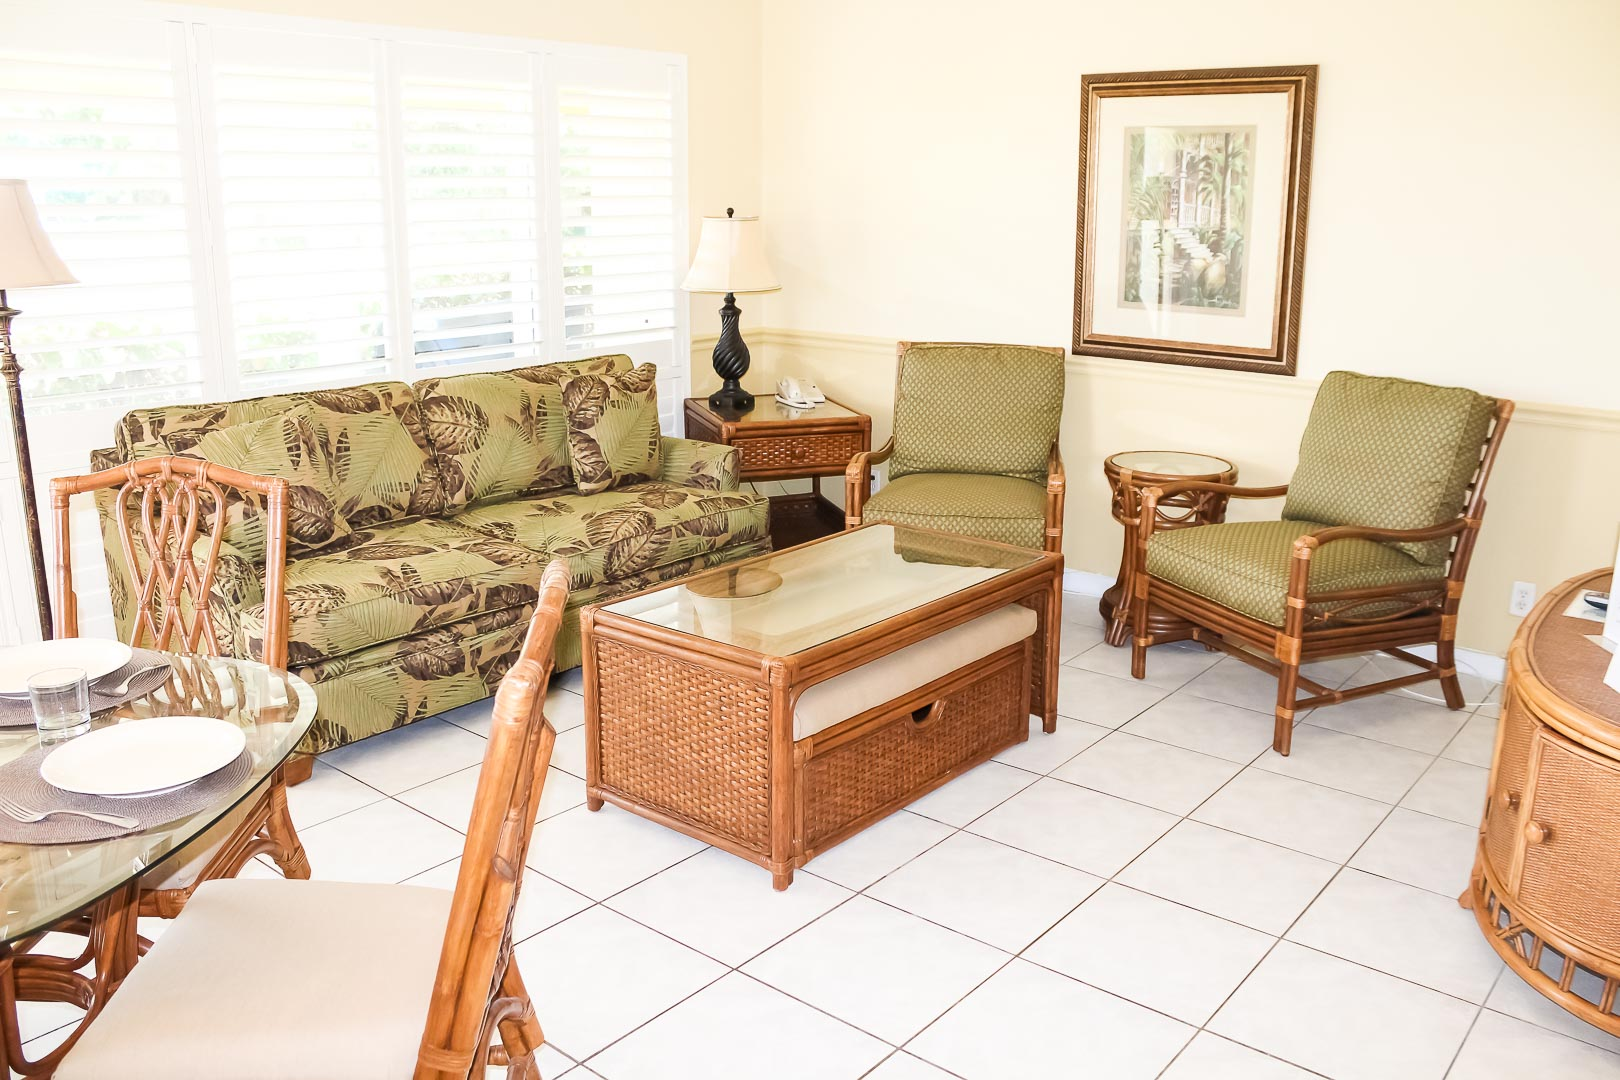 A floral living room area at VRI's Berkshire on the Ocean in Florida.